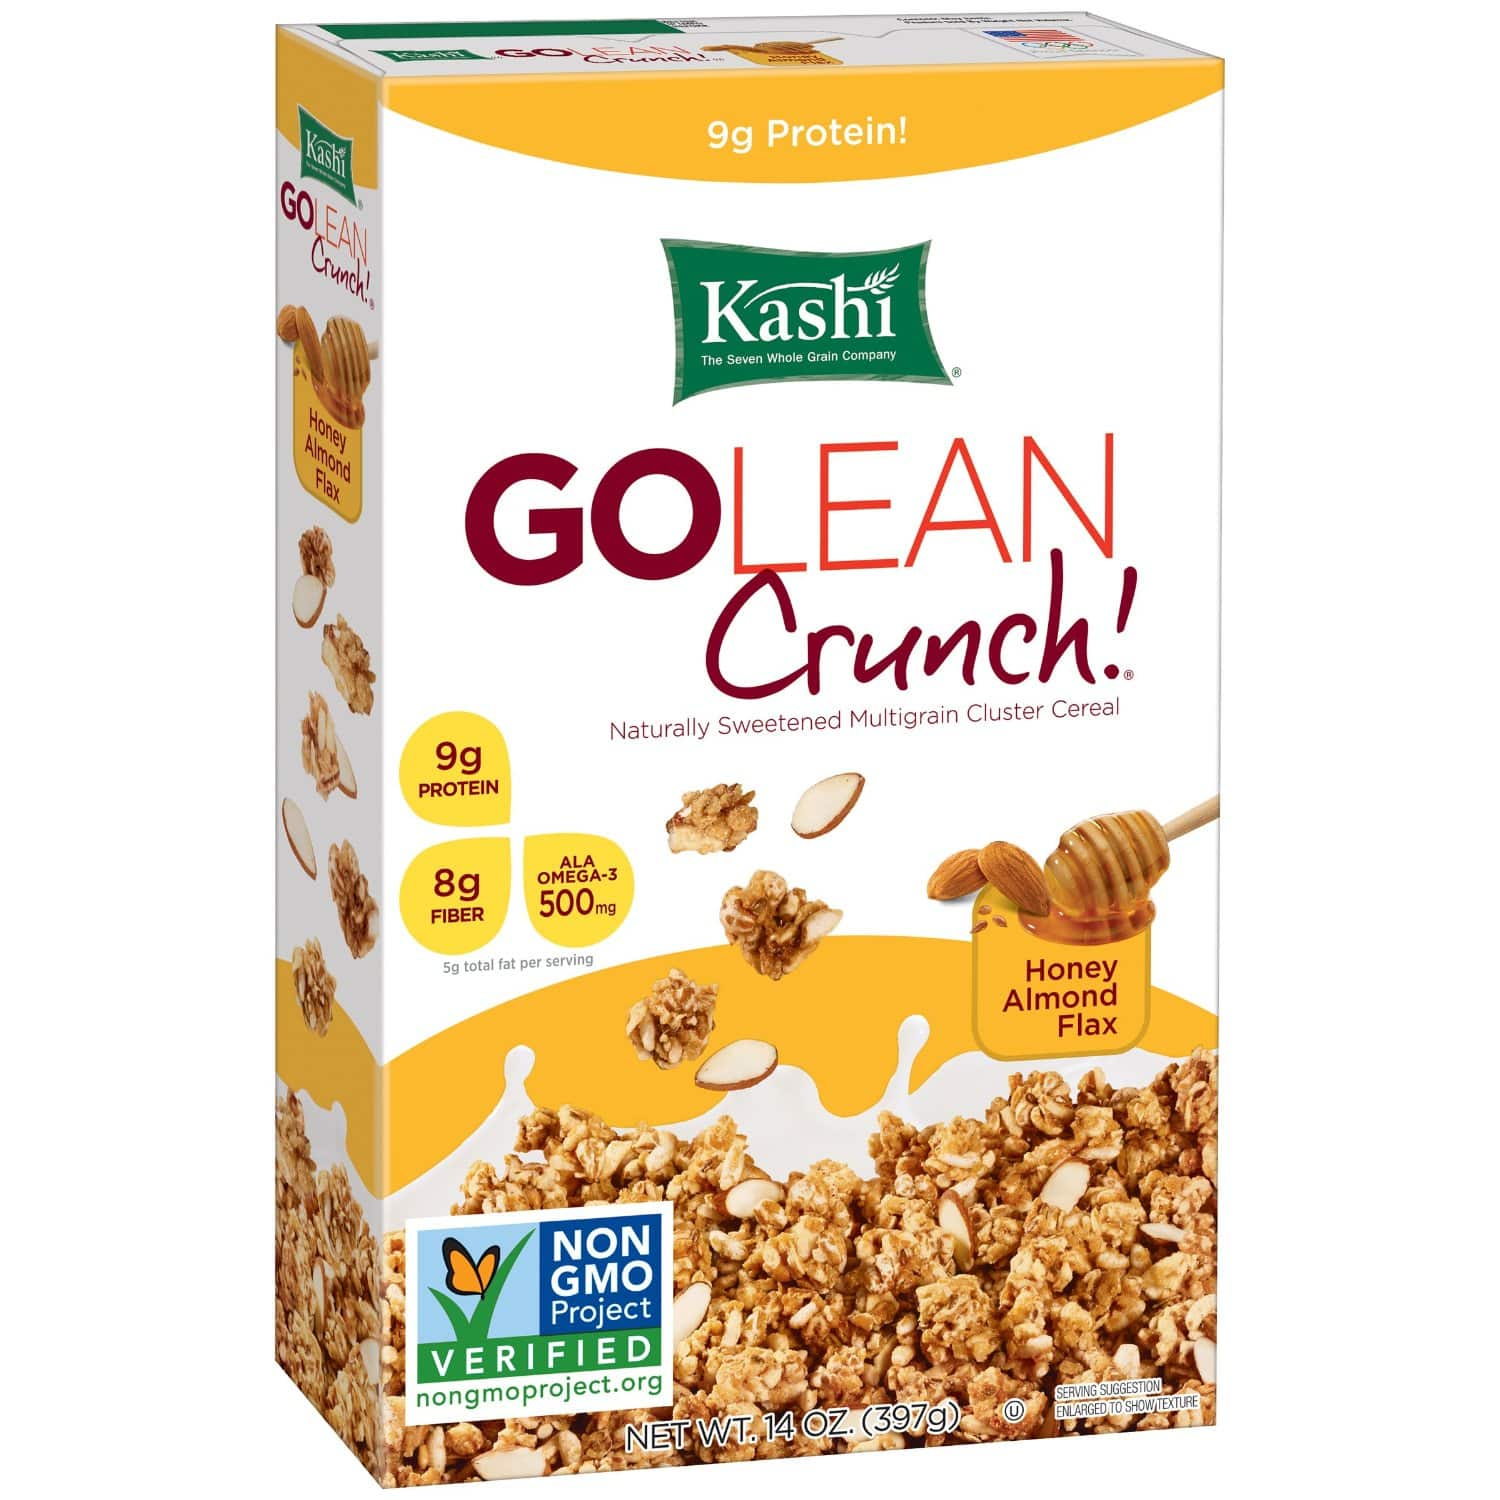 4-Pack of 14oz Kashi GOLEAN Crunch! Cereal (Honey Almond Flax)  $10.20 + Free Shipping